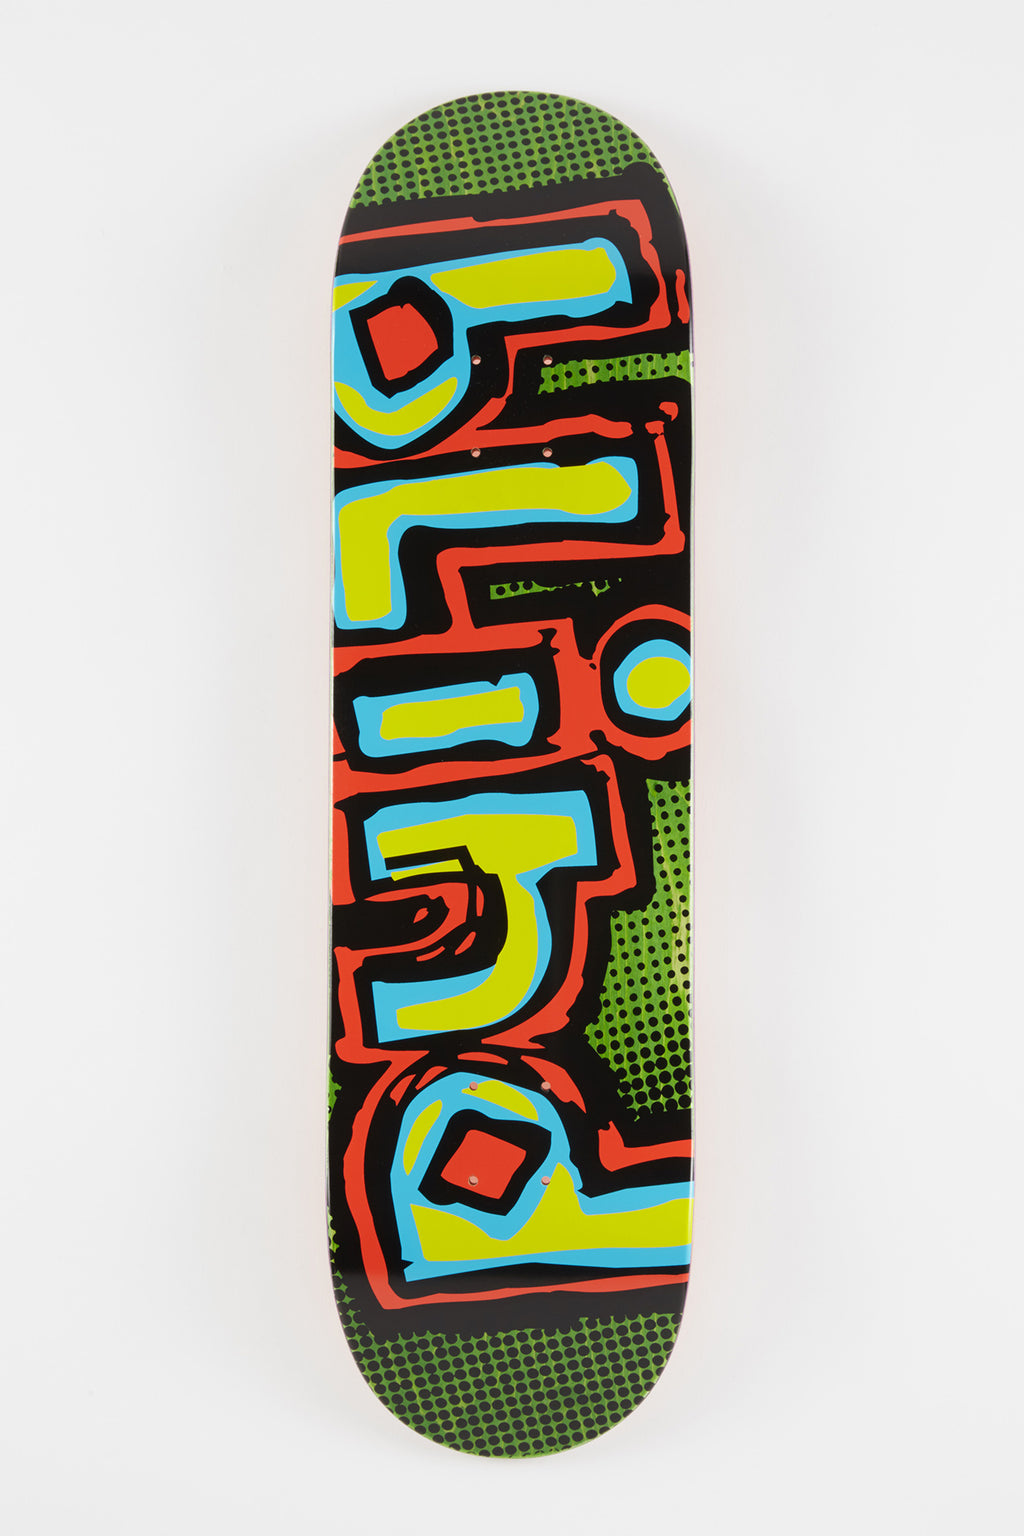 Blind OG Logo Skateboard Deck 8.375""